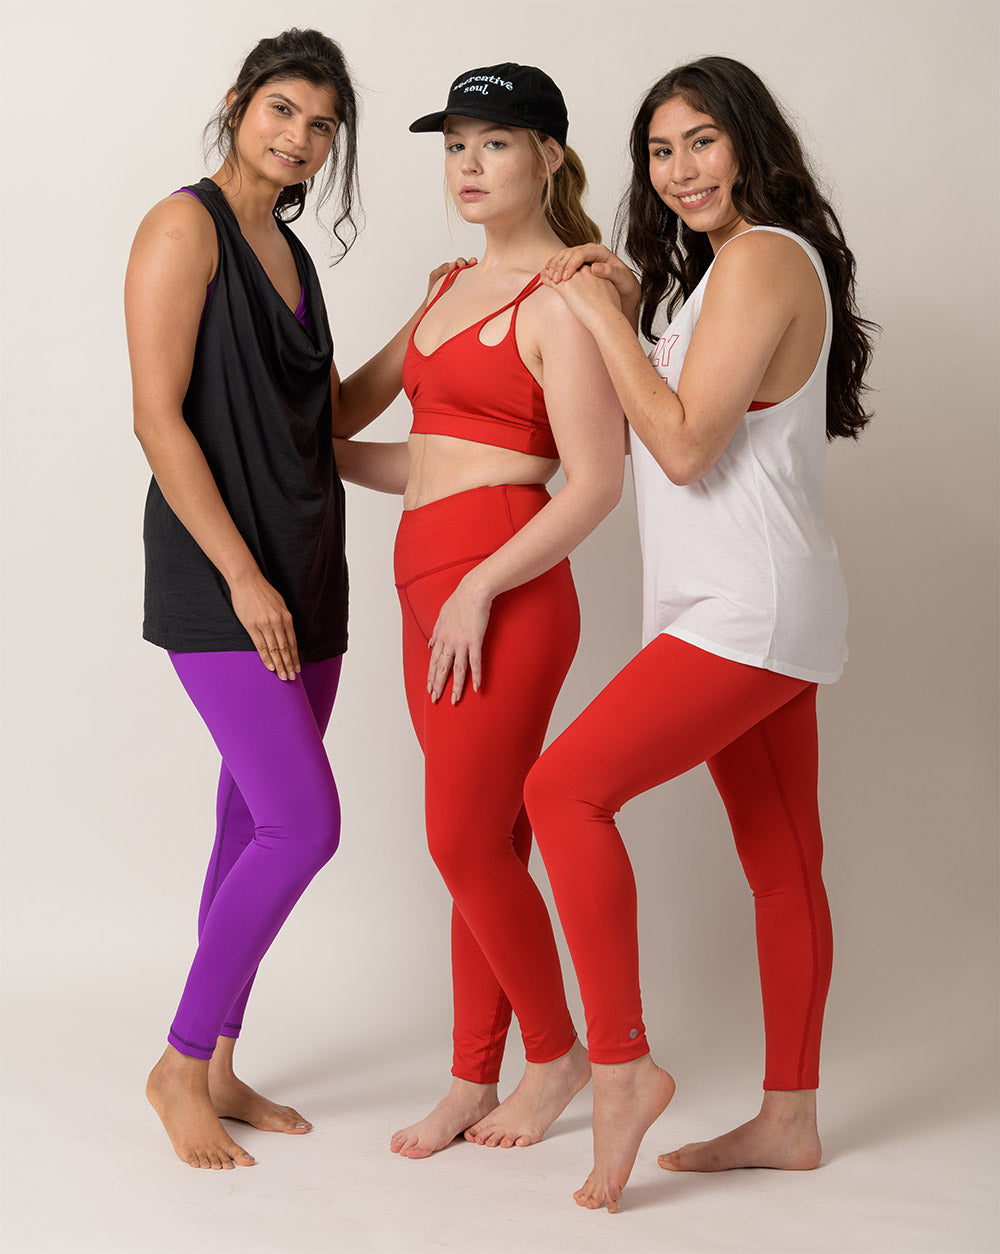 three women wearing Recreative Apparel colorful leggings and bras made with recycled polyester fabric